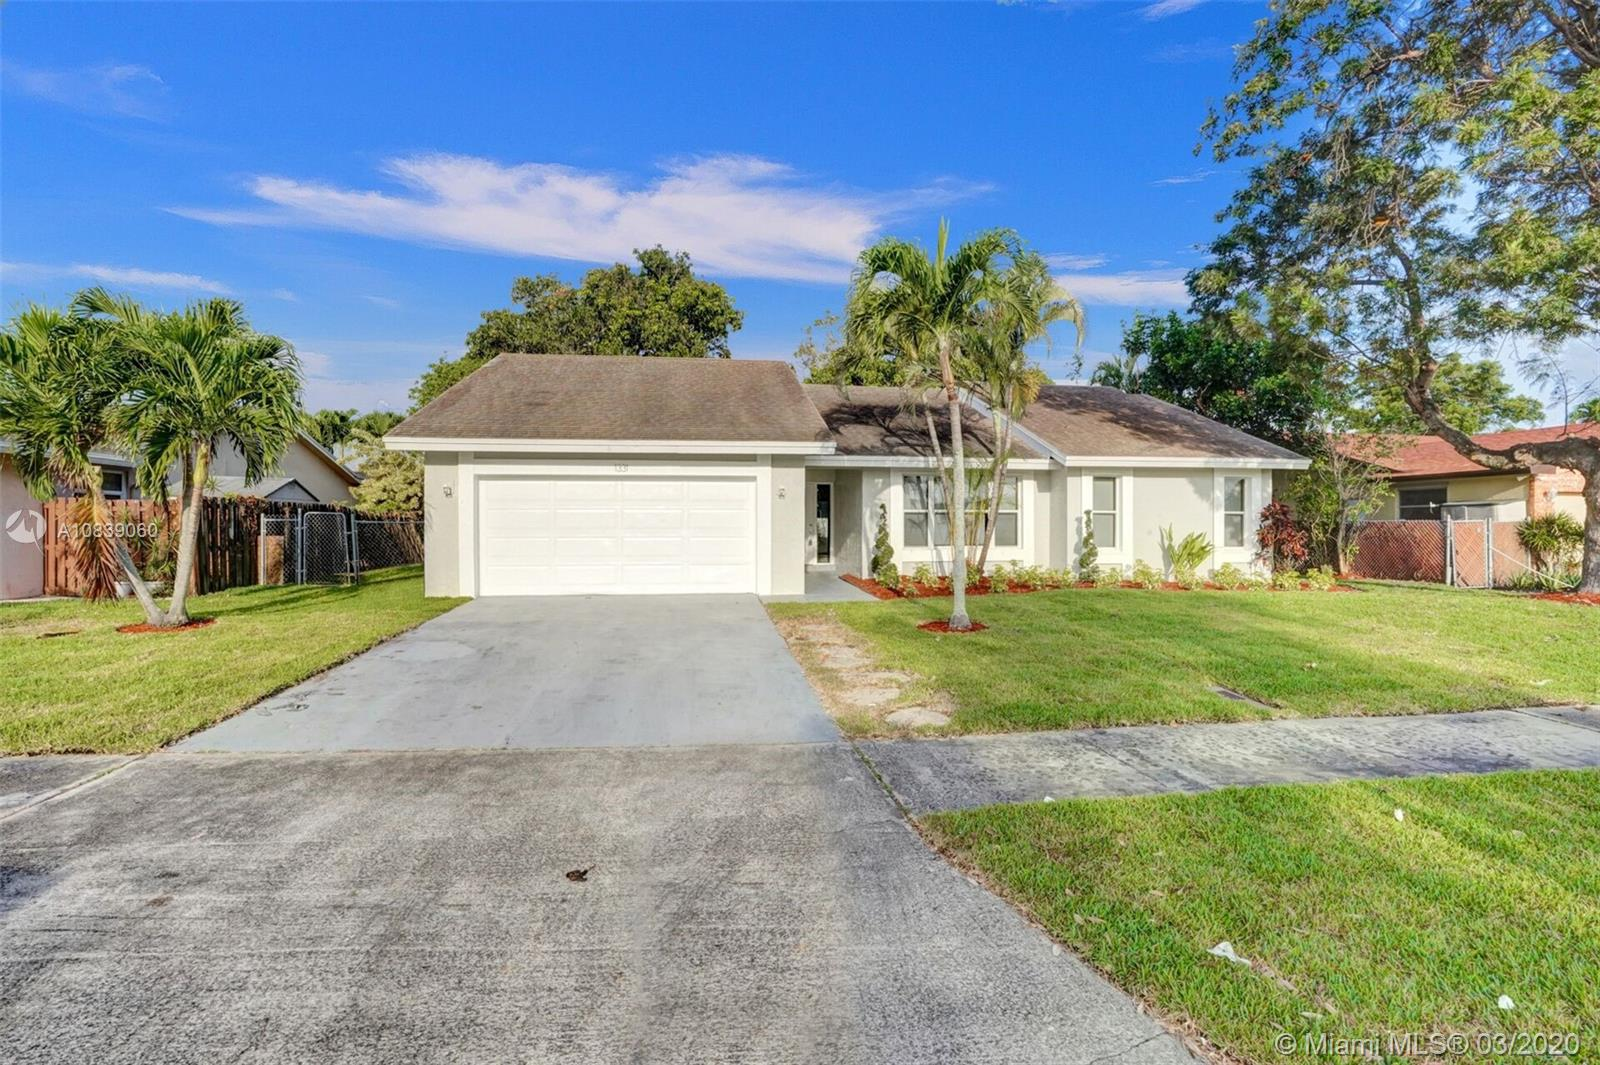 BEAUTIFUL FULLY REMODELED 3/2 WITH SPACIOUS 2 CAR GARAGE HOME IN THE HEART OF DEERFIELD BEACH! PERFECT TURN-KEY STARTER HOME OR VACATION RENTAL OPPORTUNITY! BRAND NEW 2020 FLAT ROOF, 2012 RHEEM A/C UNIT, NEW BATHROOMS, SEPARATE LAUNDRY AREA WITH NEW FRONT LOAD SAMSUNG WASHER AND DRYER, NEW CUSTOM KITCHEN WITH HIGH END EUROPEAN CABINETS, QUARTZ COUNTER-TOP AND BRAND NEW STAINLESS STEEL APPLIANCES, RECESSED LIGHTING THROUGHOUT, VERY LARGE BACKYARD NICE FOR ENTERTAINMENT OR TO BUILD A POOL, NEW GRASS AND PLANS WITH IRRIGATION SYSTEM, VERY LARGE AND SPACIOUS DRIVEWAY, FRESHLY PAINTED INSIDE/OUT... MINUTES FROM SCHOOLS, BEACH, SHOPPING PLAZAS ETC.. HURRY THIS WONT LAST LONG!!